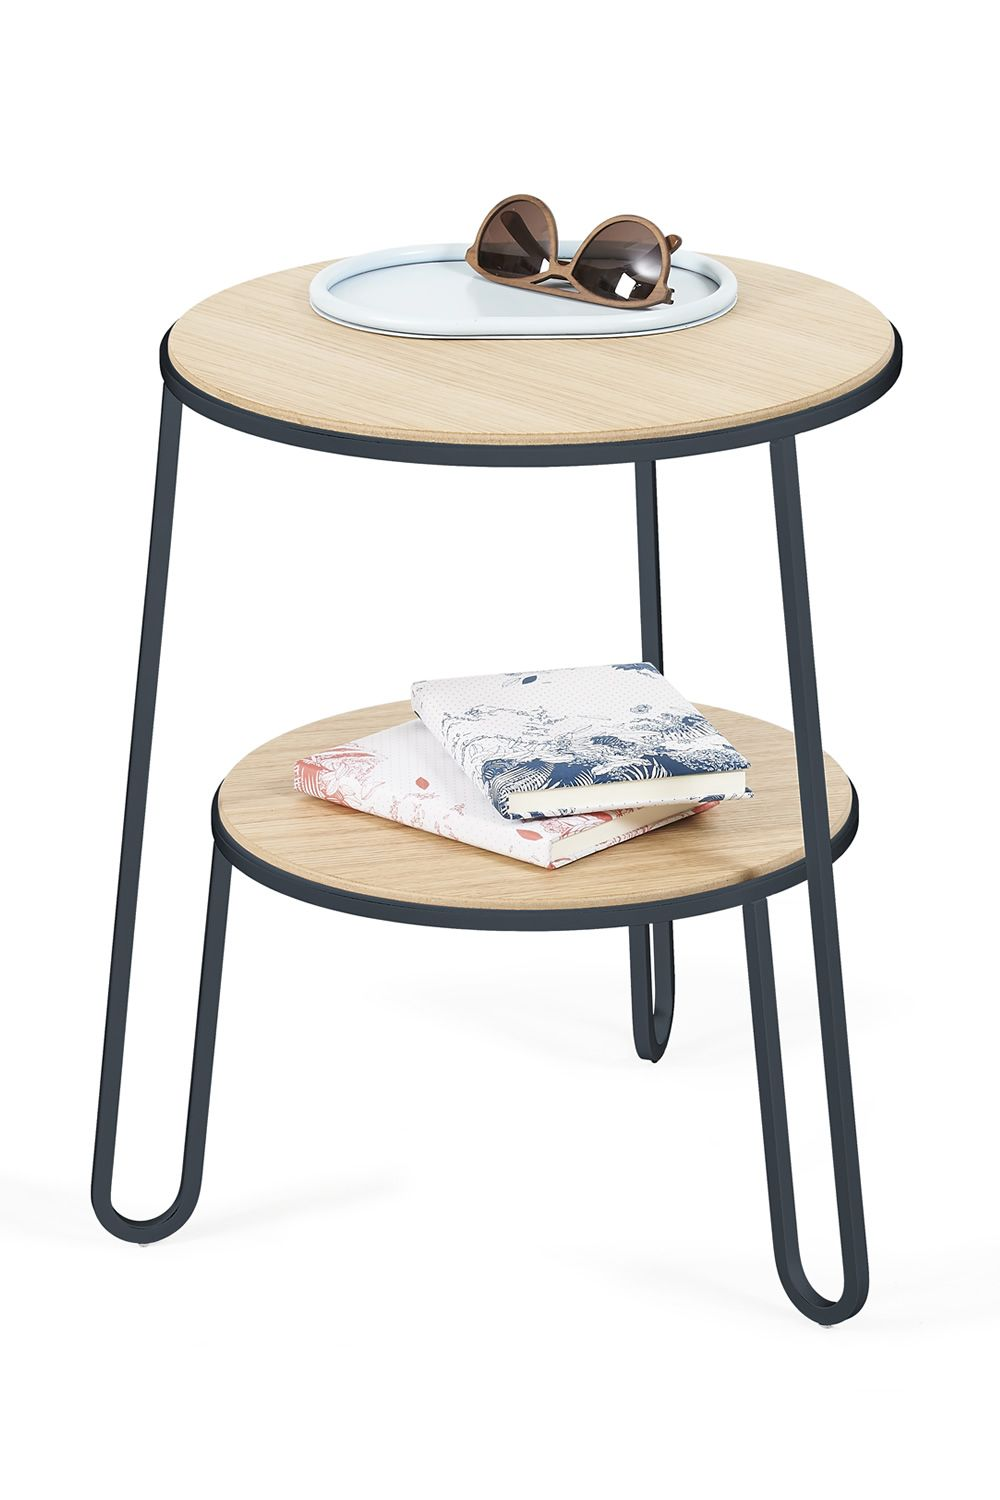 Side table in slate grey varnished metal, with wooden top